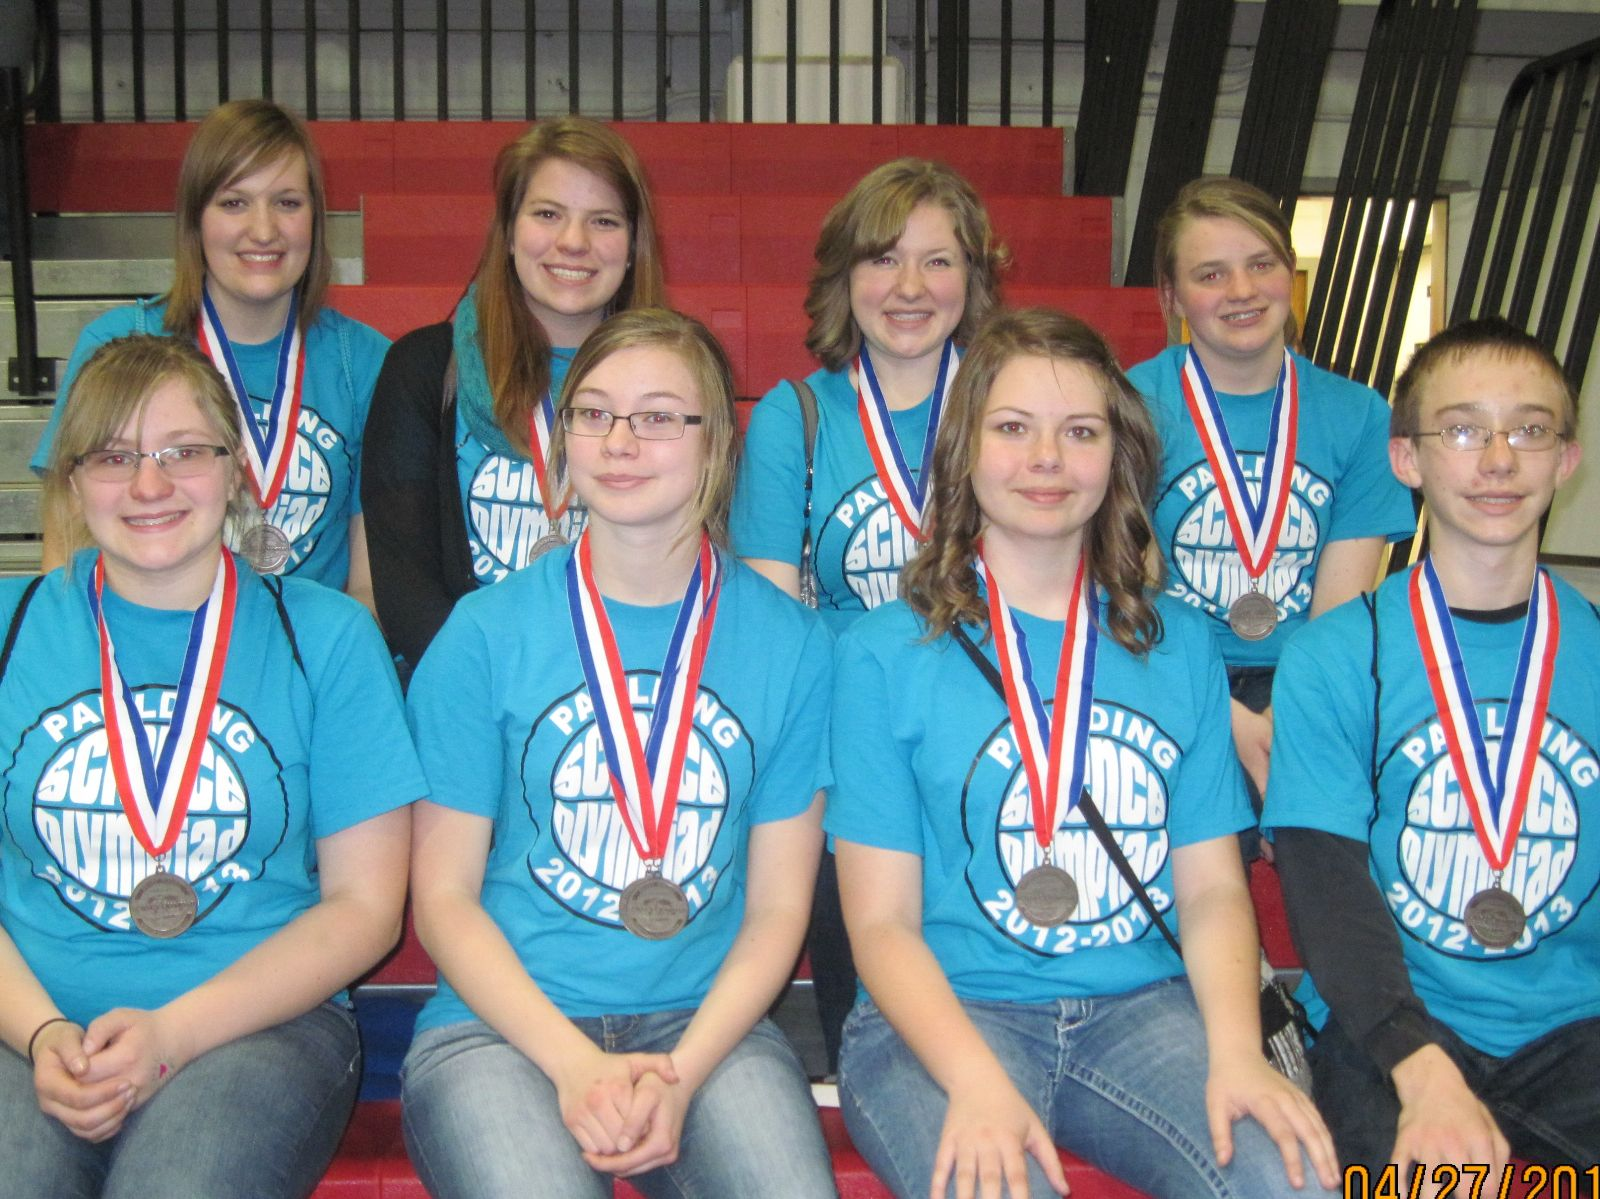 2013 State Medalists